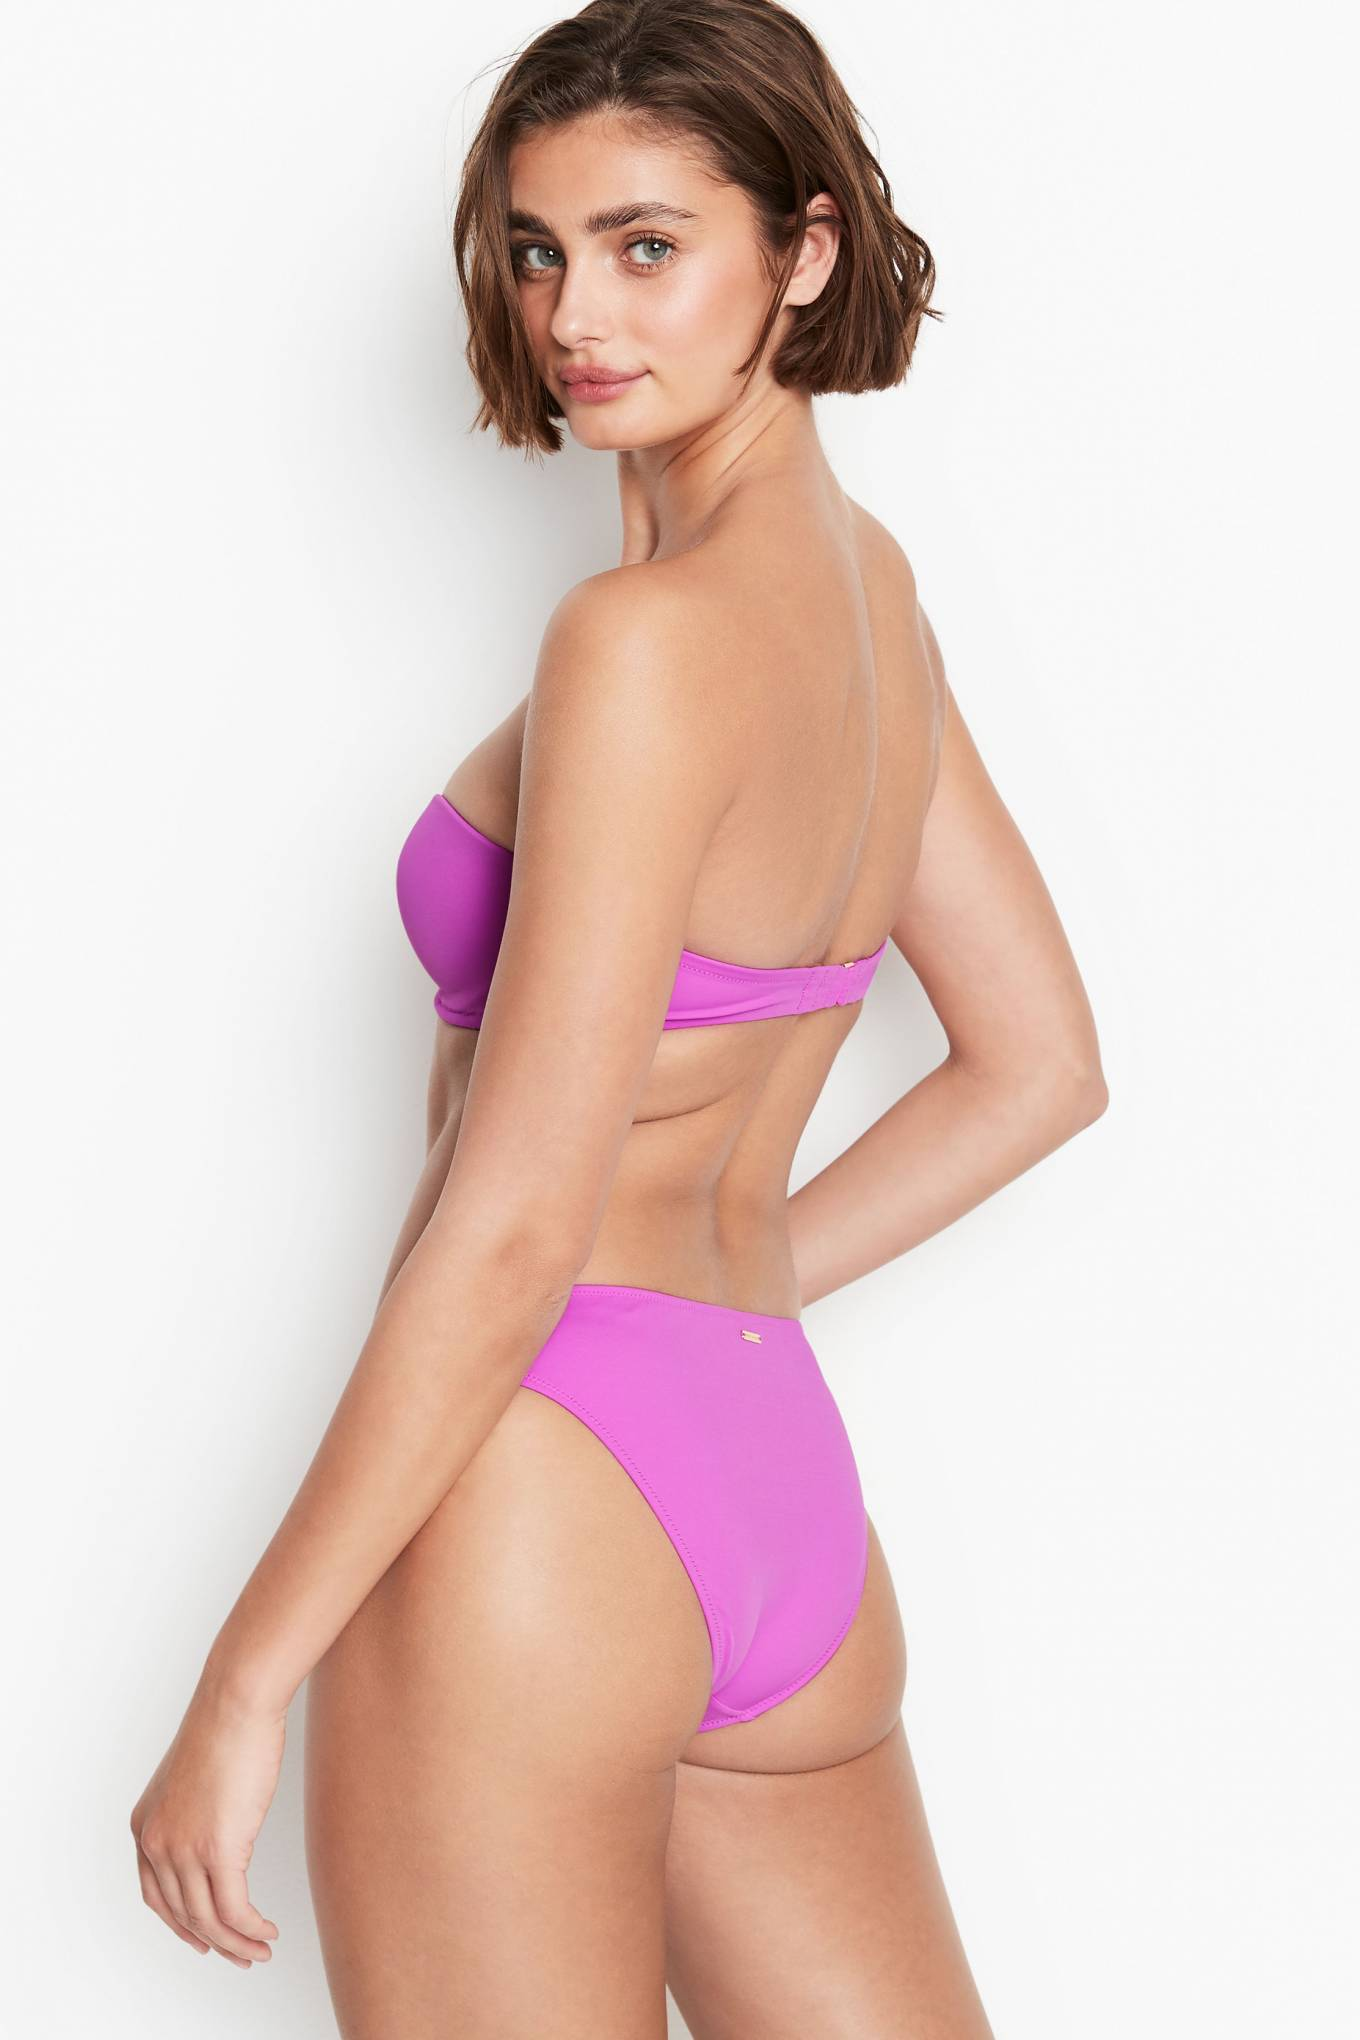 Taylor Hill donning a gorgeous pink bandeau with a nylon material and ruched